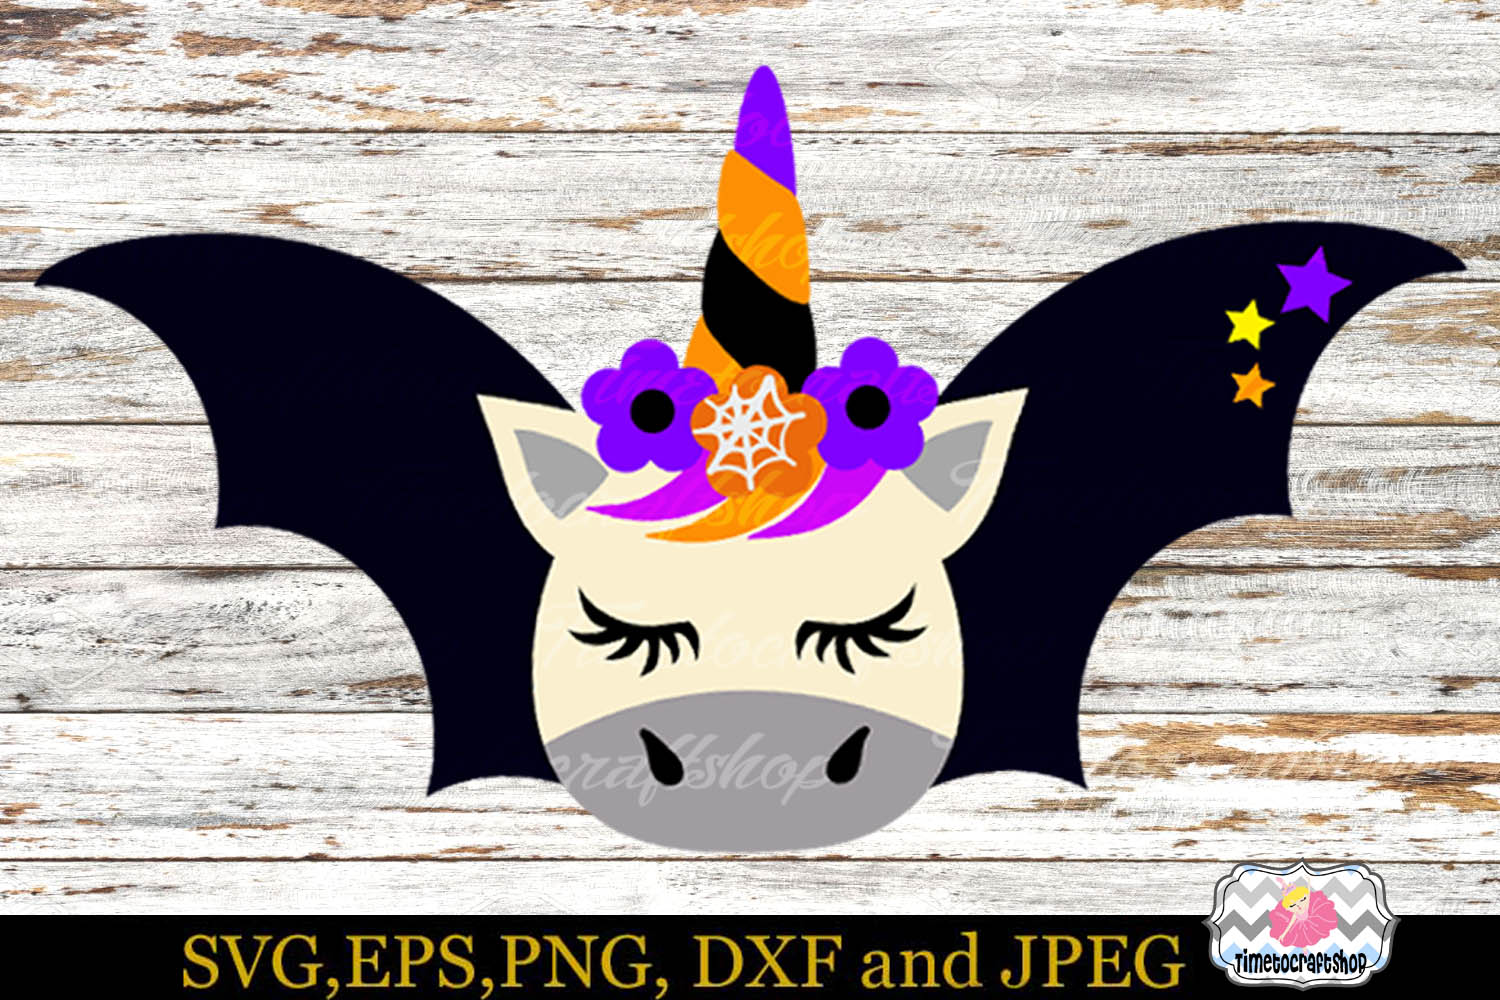 SVG, Eps, Dxf & Png Files For Halloween Unicorn Bundle example image 3